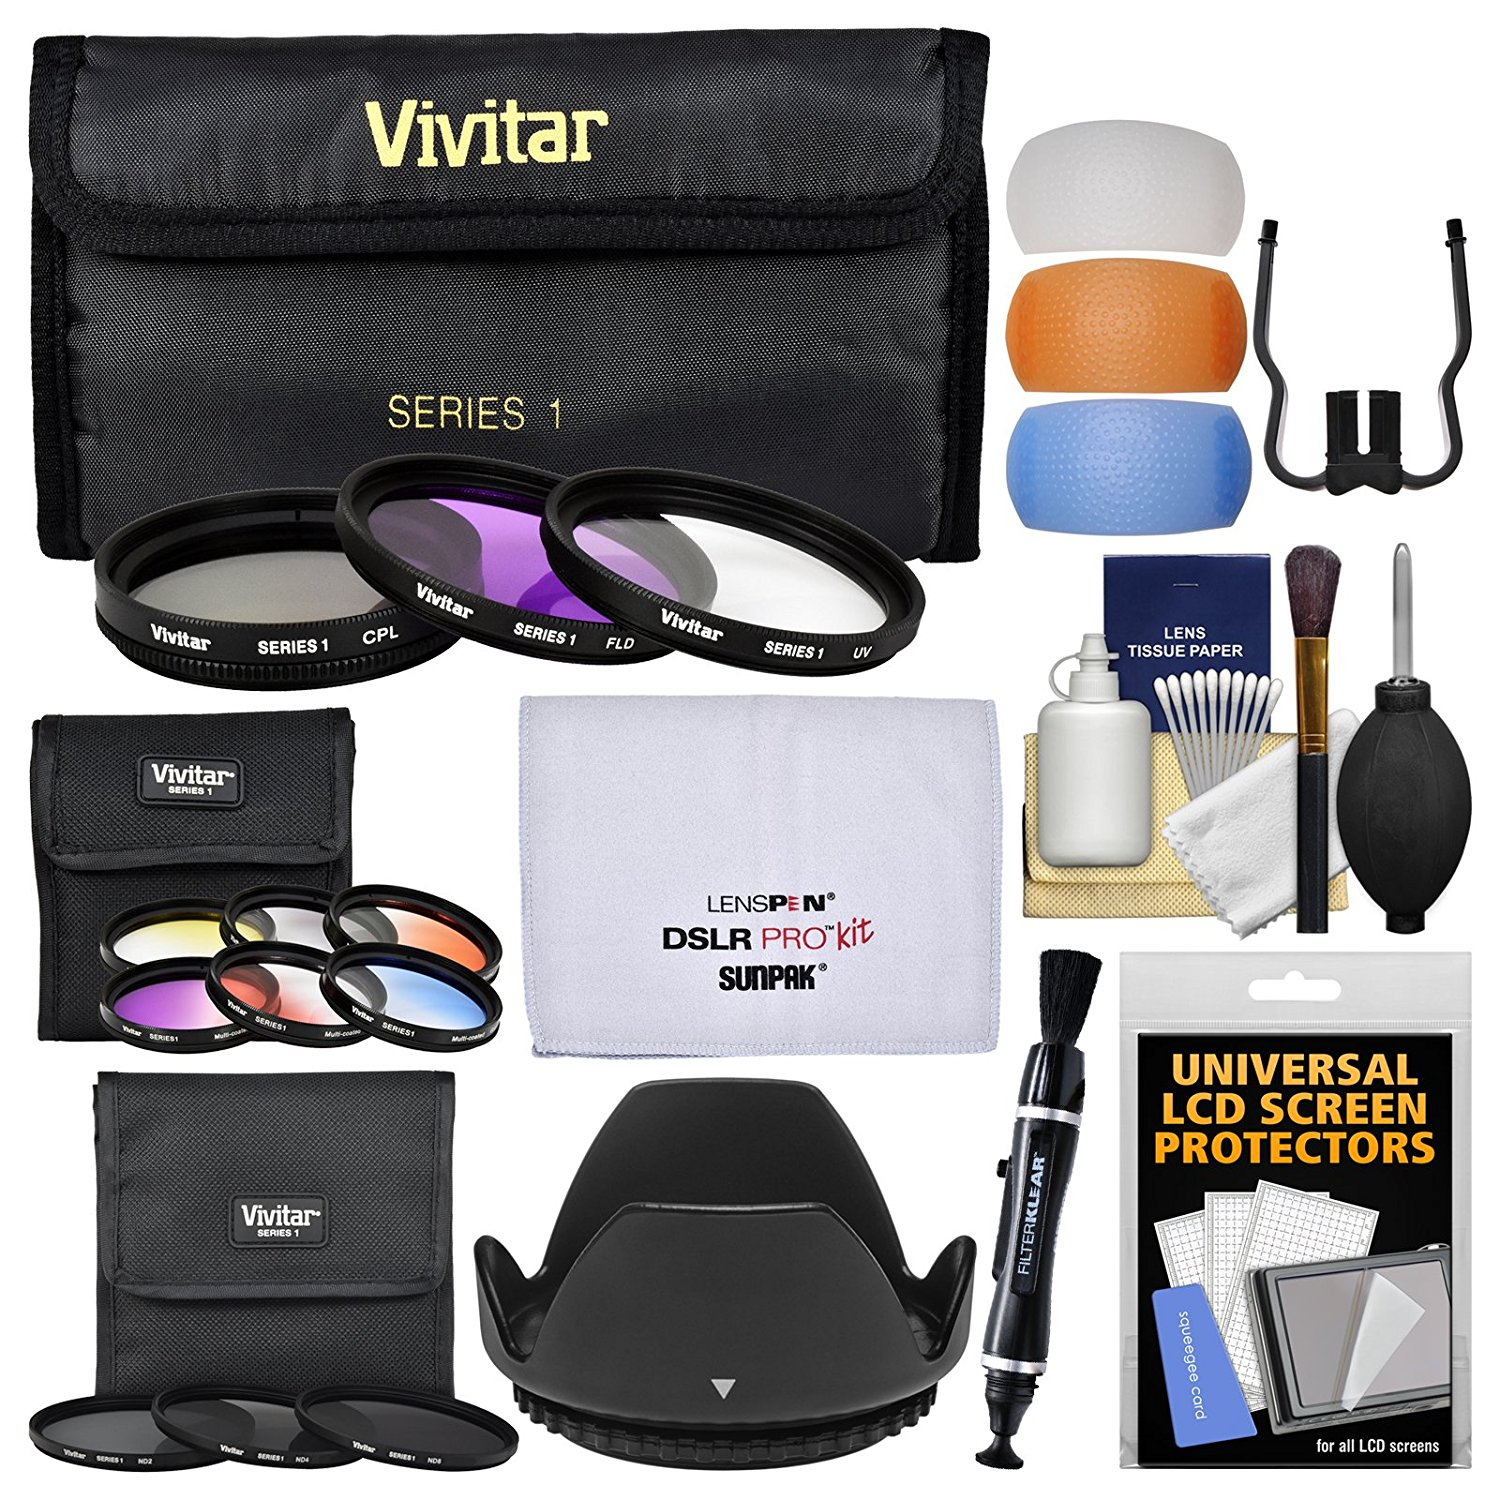 Vivitar 49mm 12-Piece Multi-Coated Glass Filter Kit (UV/FLD/CPL, 3 Neutral Density & 6 Graduated Color Filters) + Lens Hood + Flash Diffusers + Kit